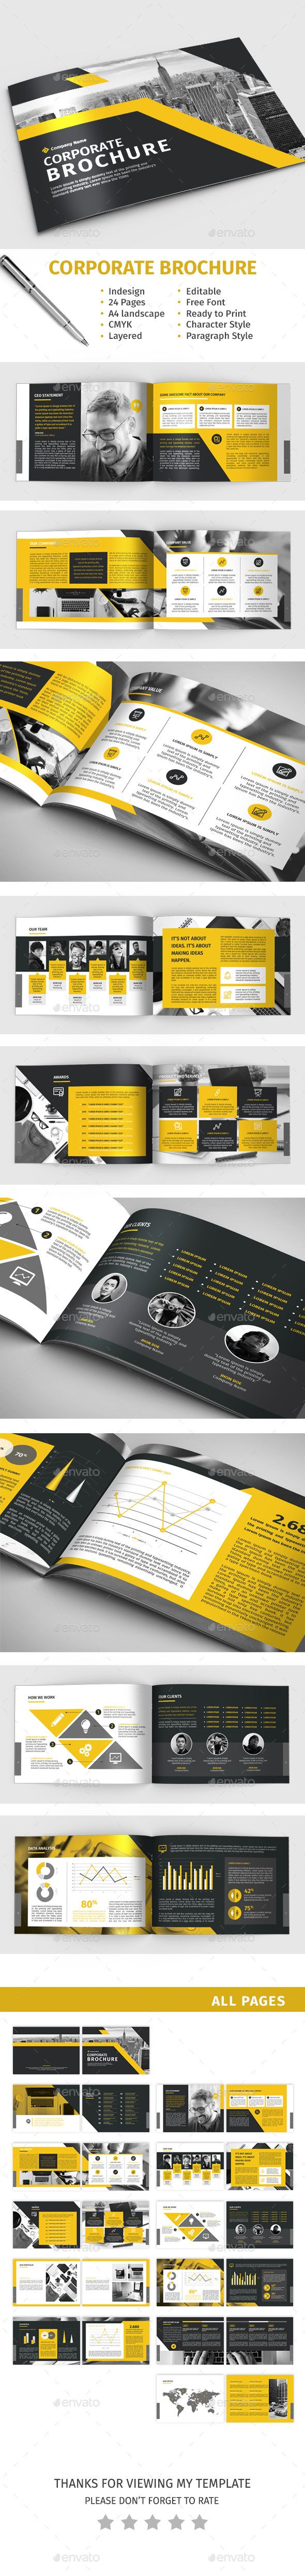 Corporate Brochure Design Template - Corporate Brochures Template InDesign INDD. Download here: https://graphicriver.net/item/corporate-brochure/16894723?s_rank=16&ref=yinkira